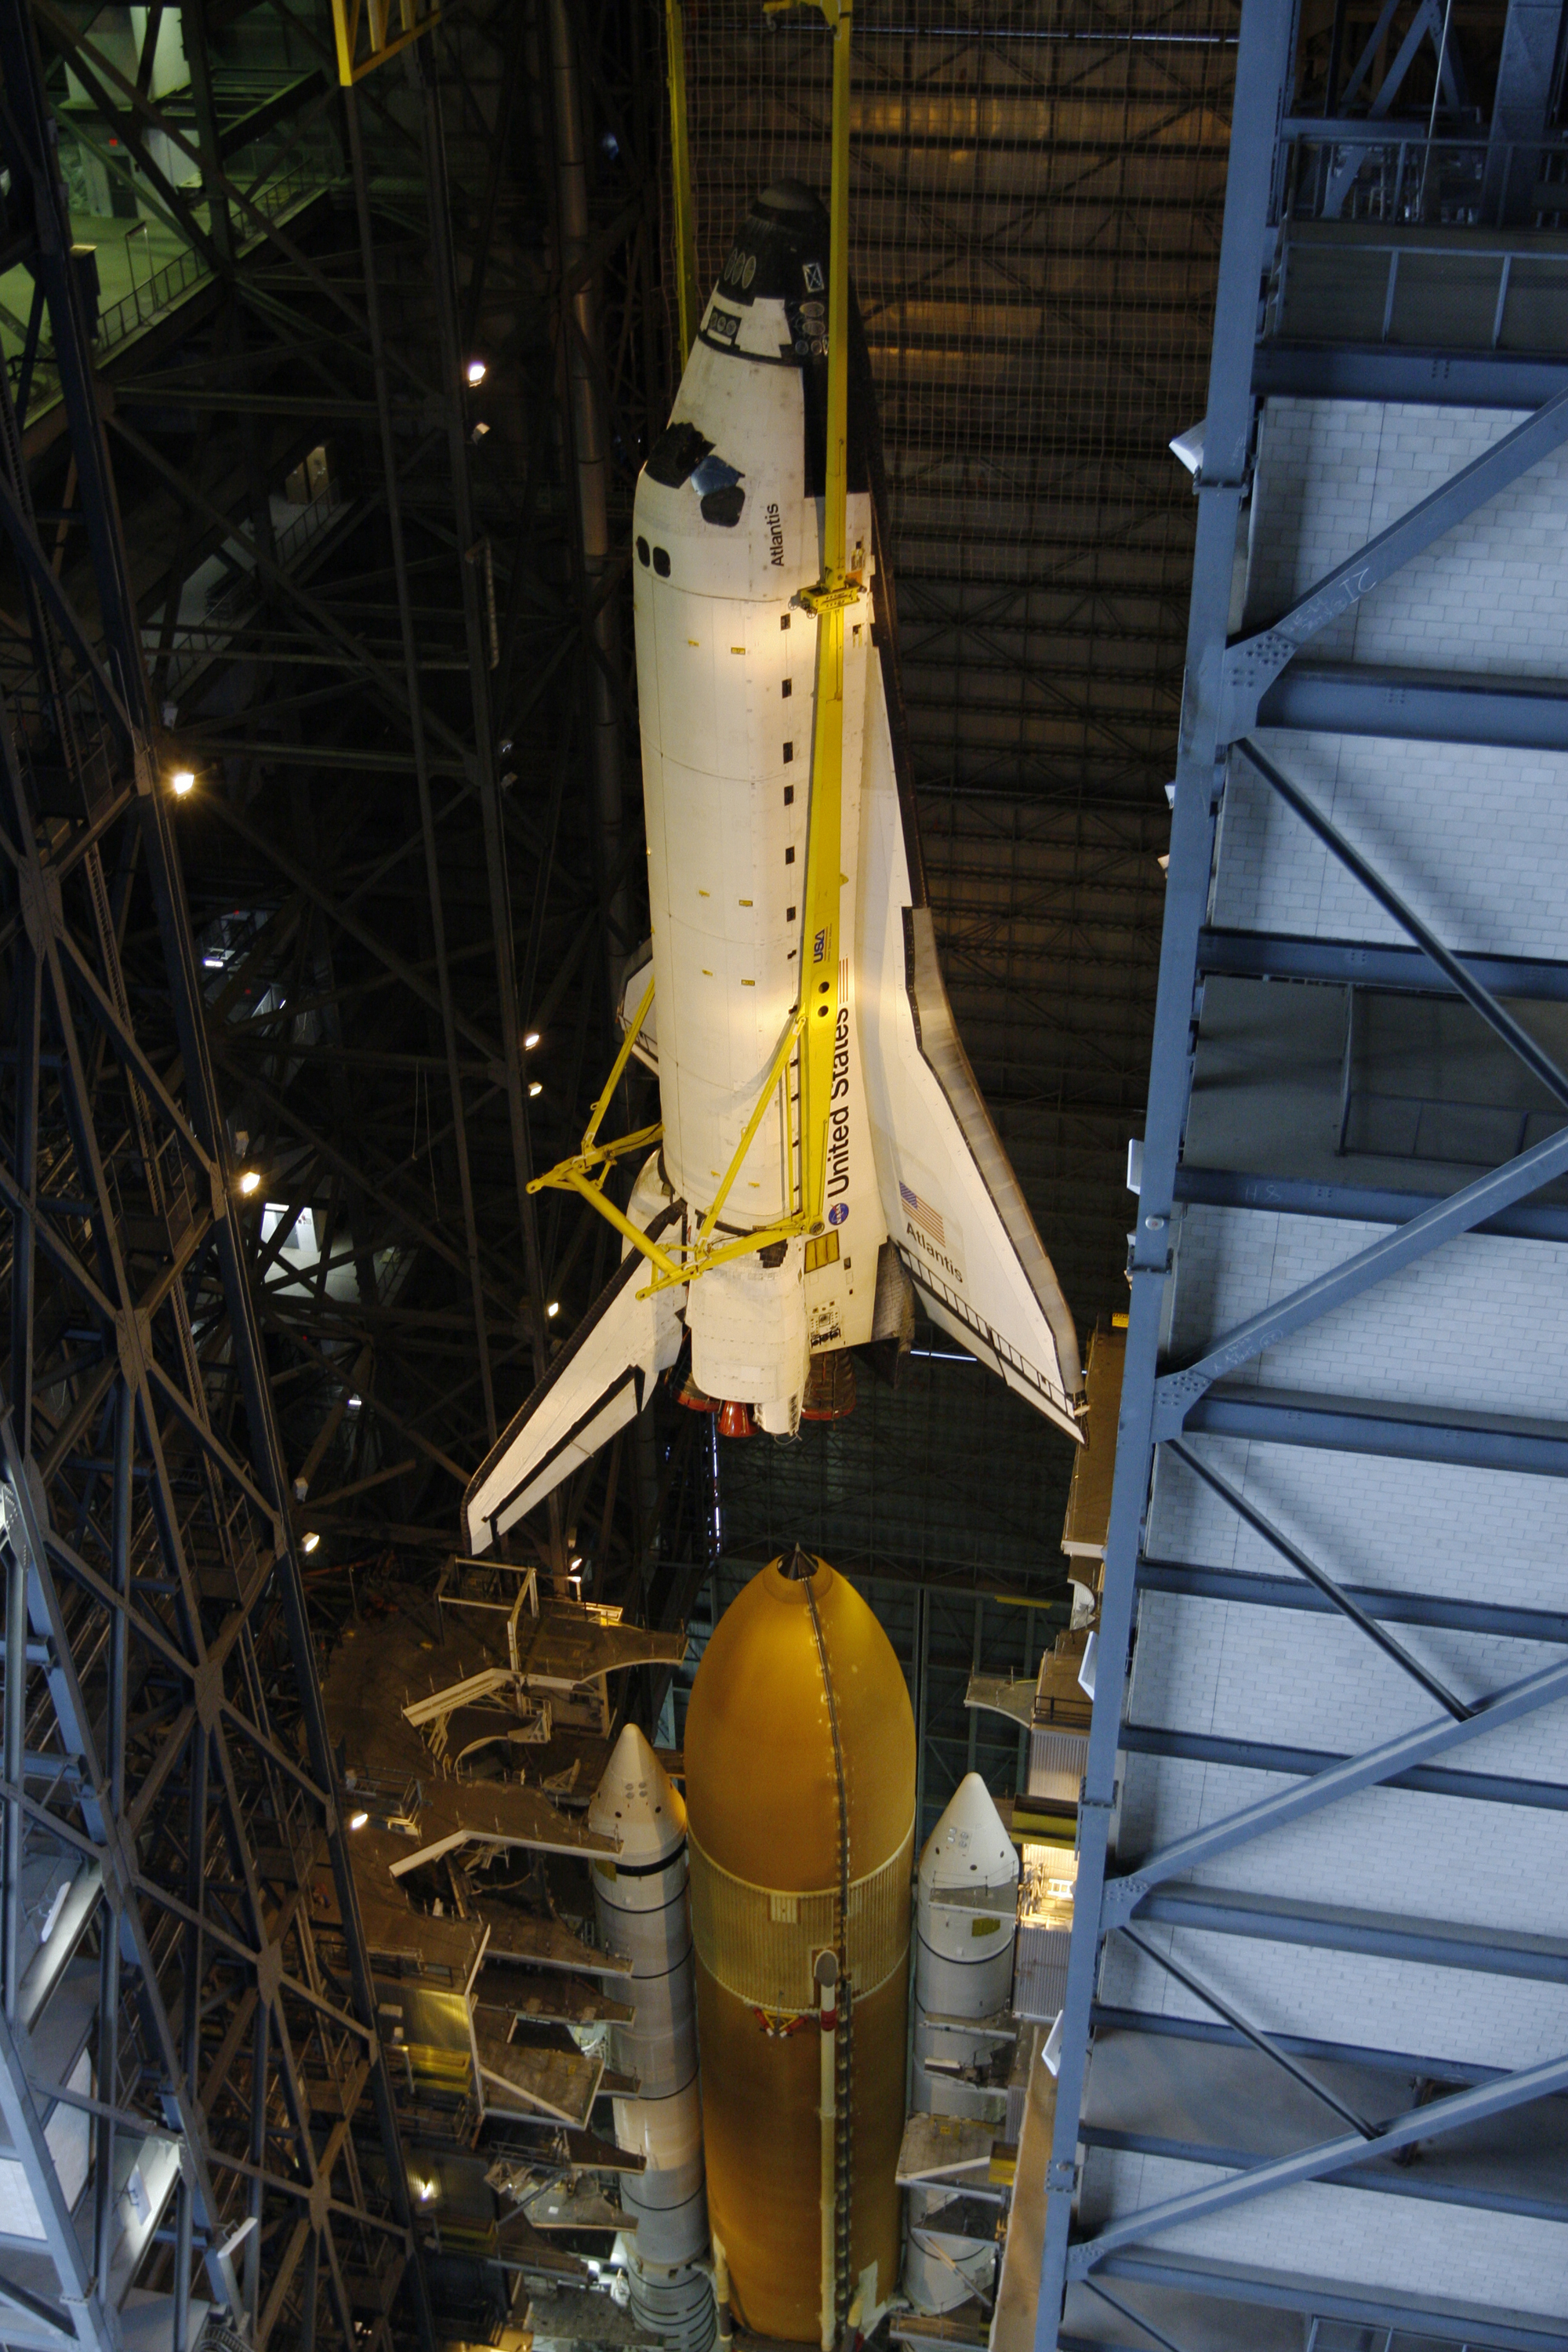 space shuttle with rocket - photo #46